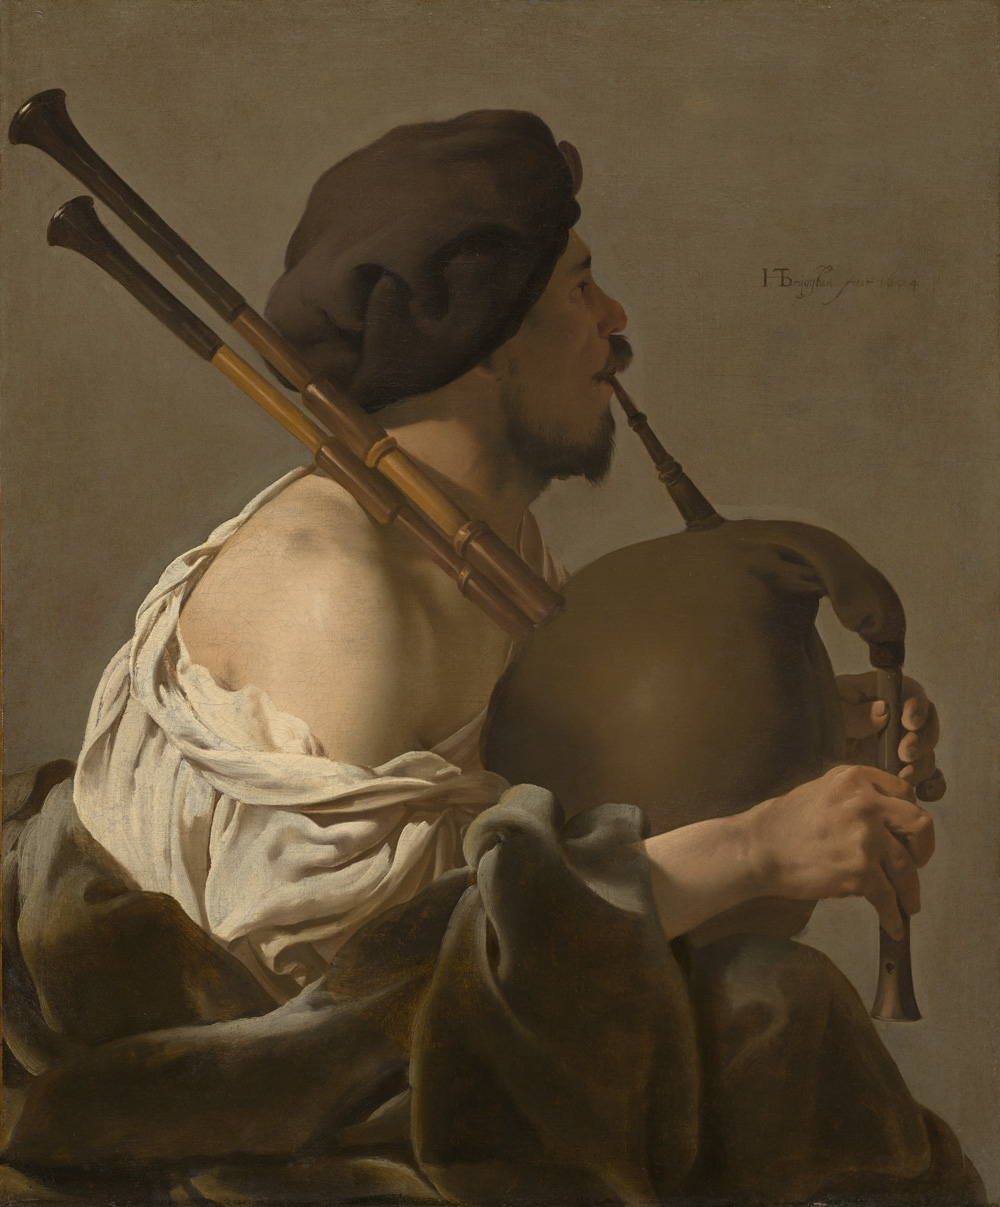 Hendrick ter Brugghen | Dutch, 1588 – 1629 | The Bagpipe Player, 1624 | Oil on canvas | National Gallery of Art | Paul Mellon Fund and Greg and Candy Fazakerley Fund | 2009.24.1